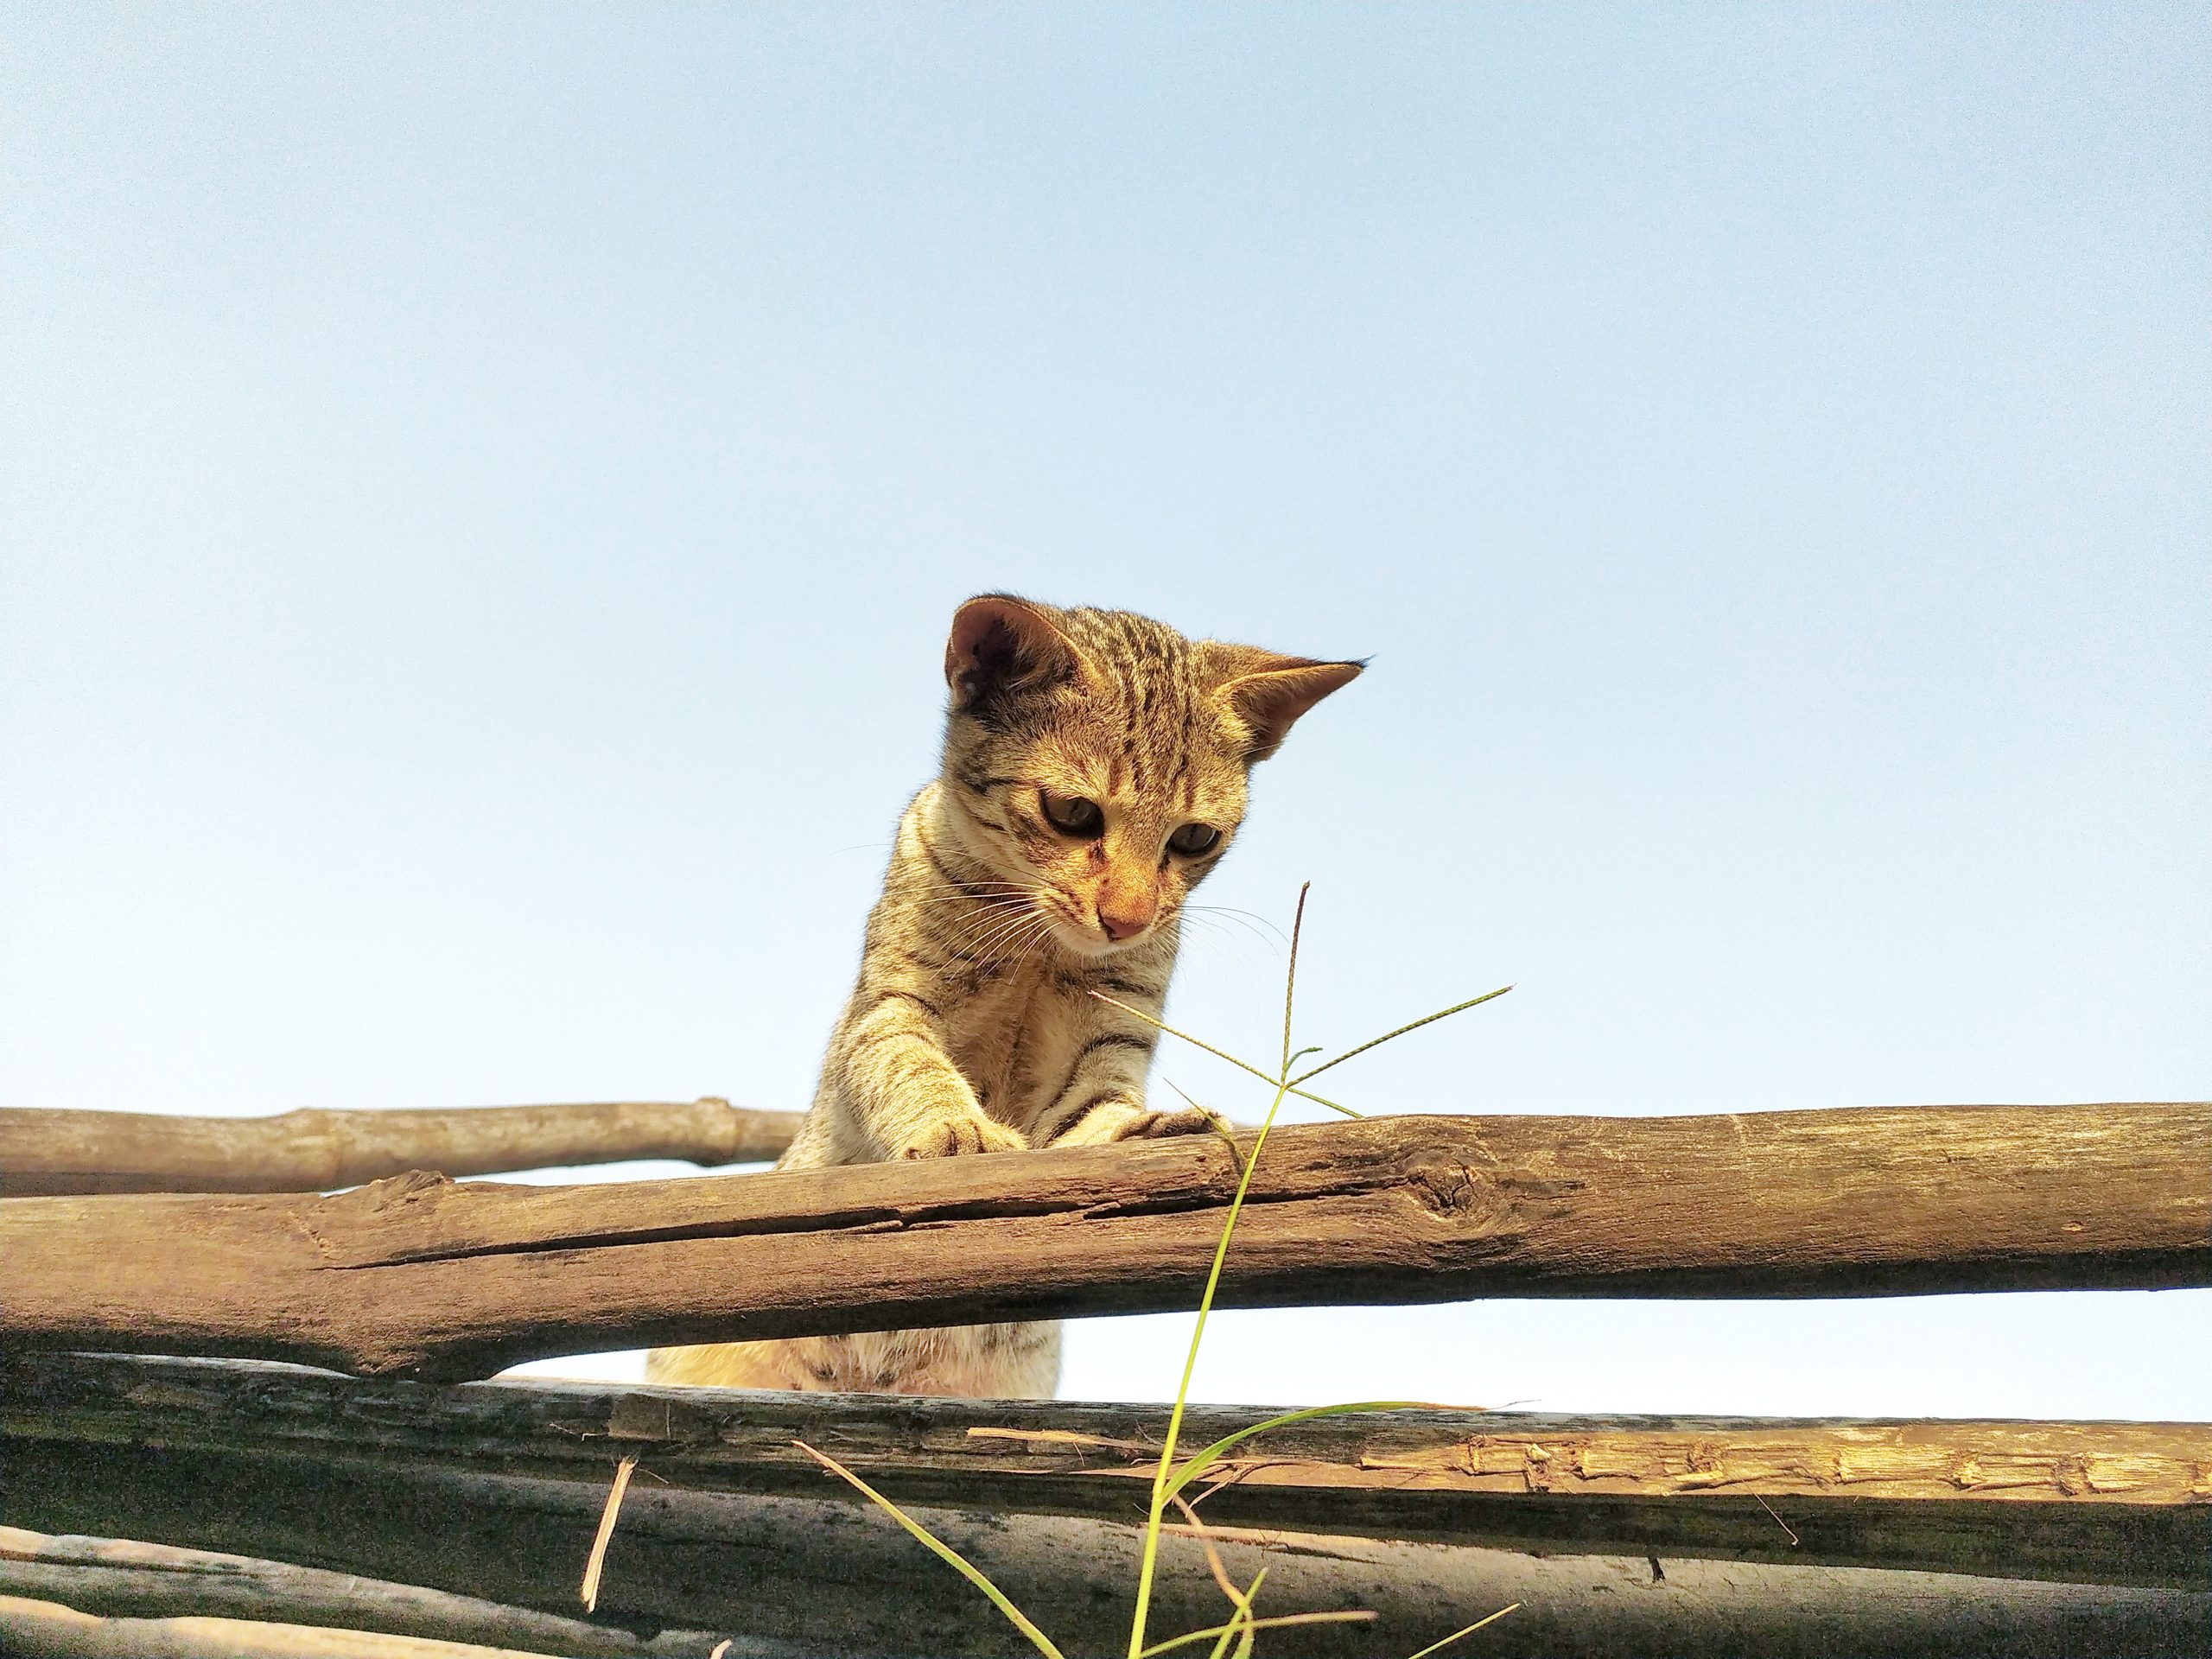 A little kitten on wooden logs